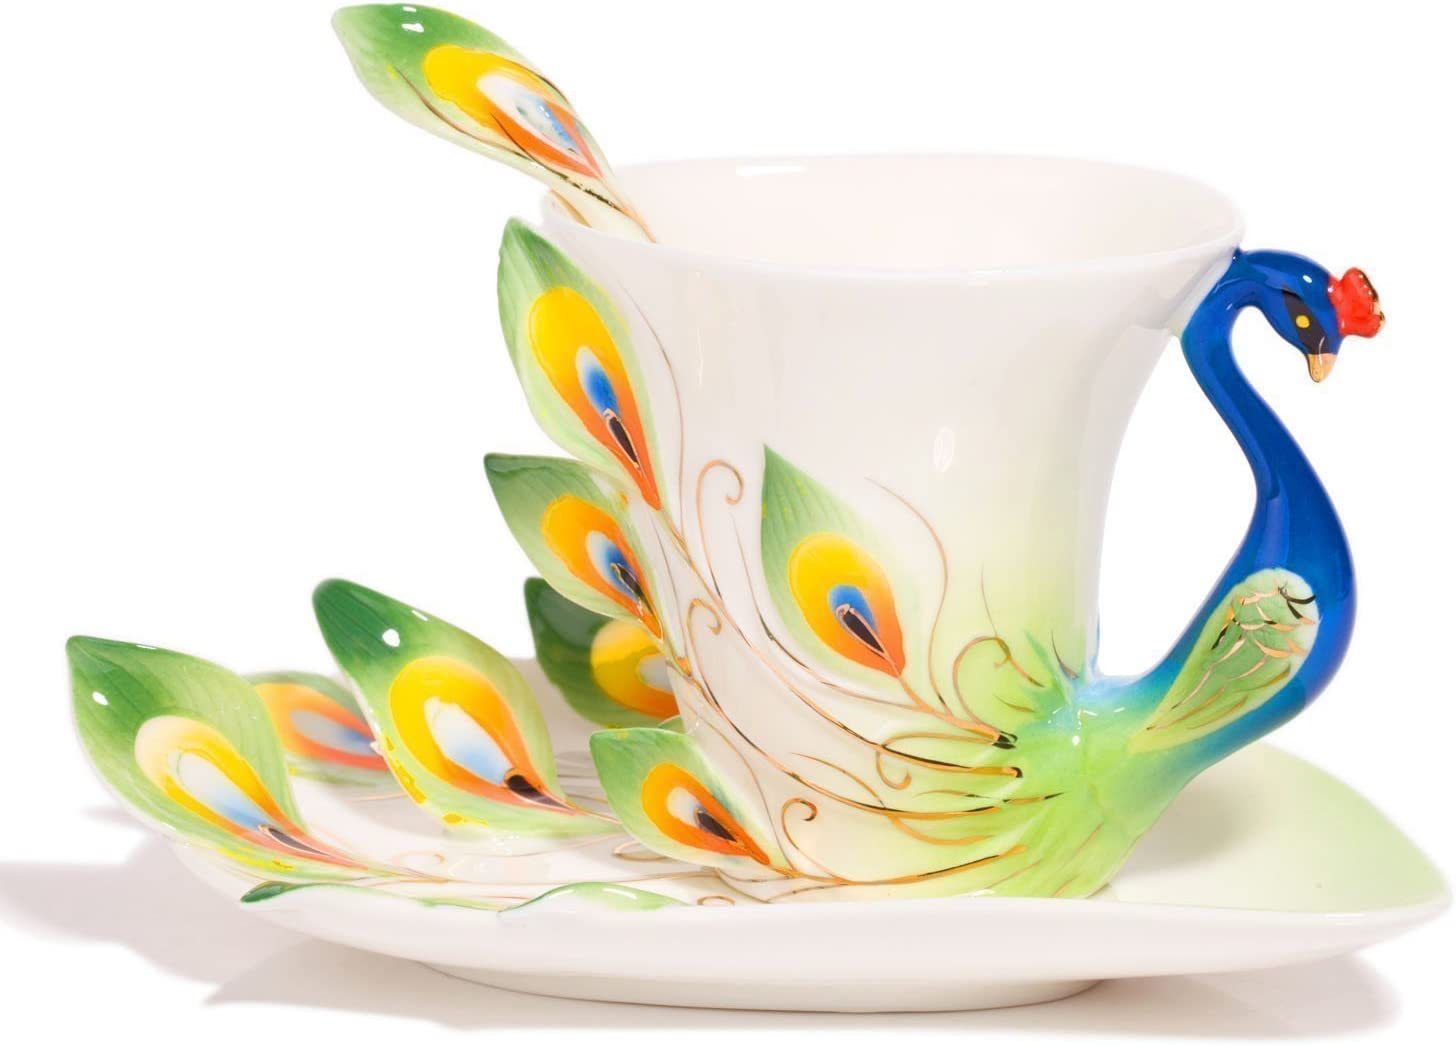 New Fashion Hand Crafted Porcelain Enamel Peacock Coffee Cup Set with Saucer and Spoon – Gift Packaging